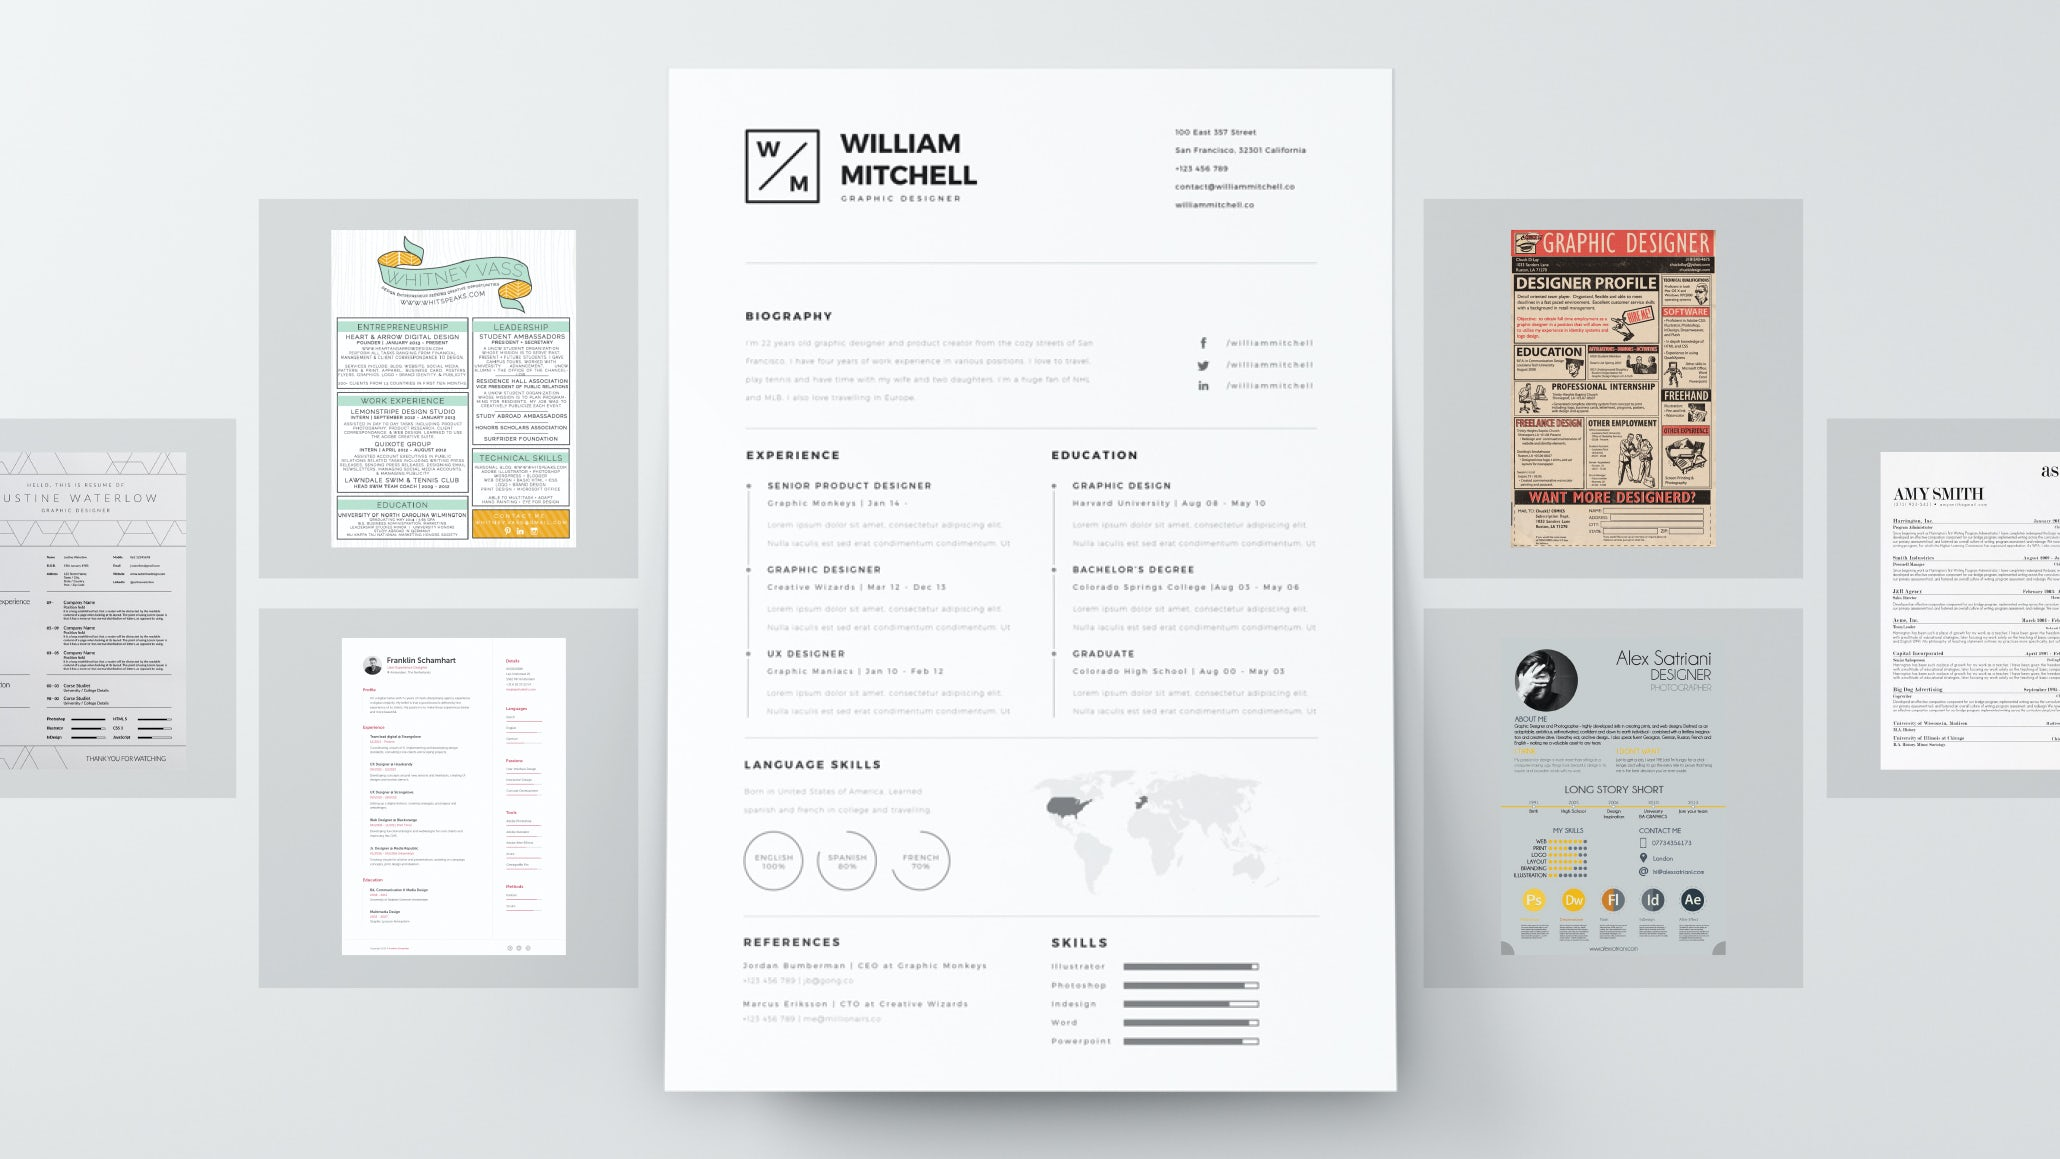 e5138c5a 7 resume design principles that will get you hired - 99designs